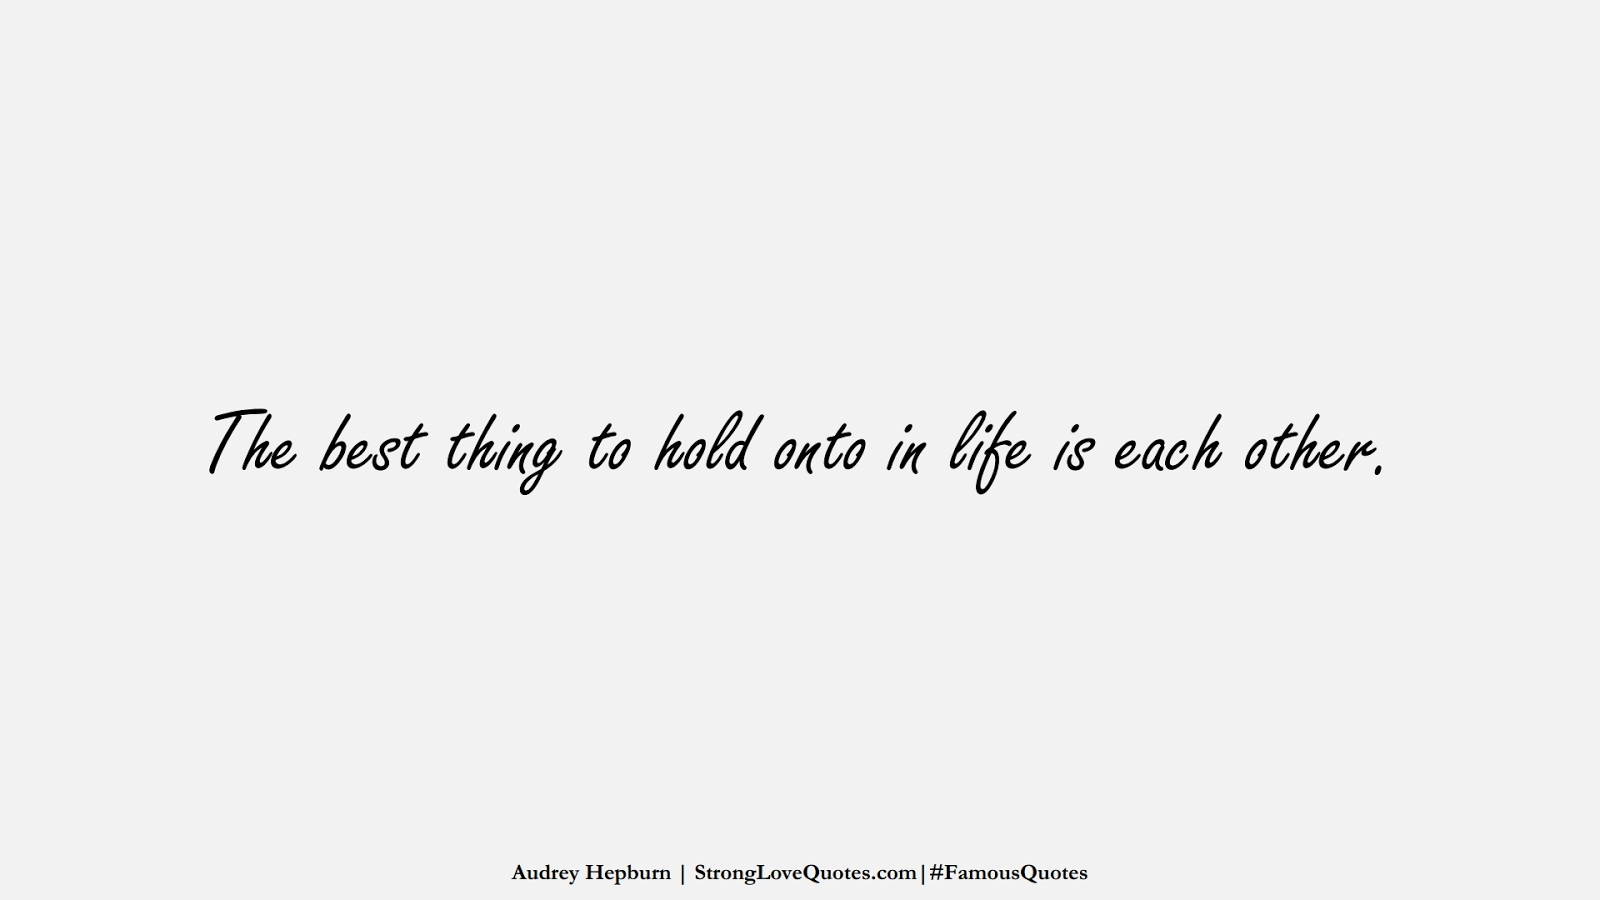 The best thing to hold onto in life is each other. (Audrey Hepburn);  #FamousQuotes